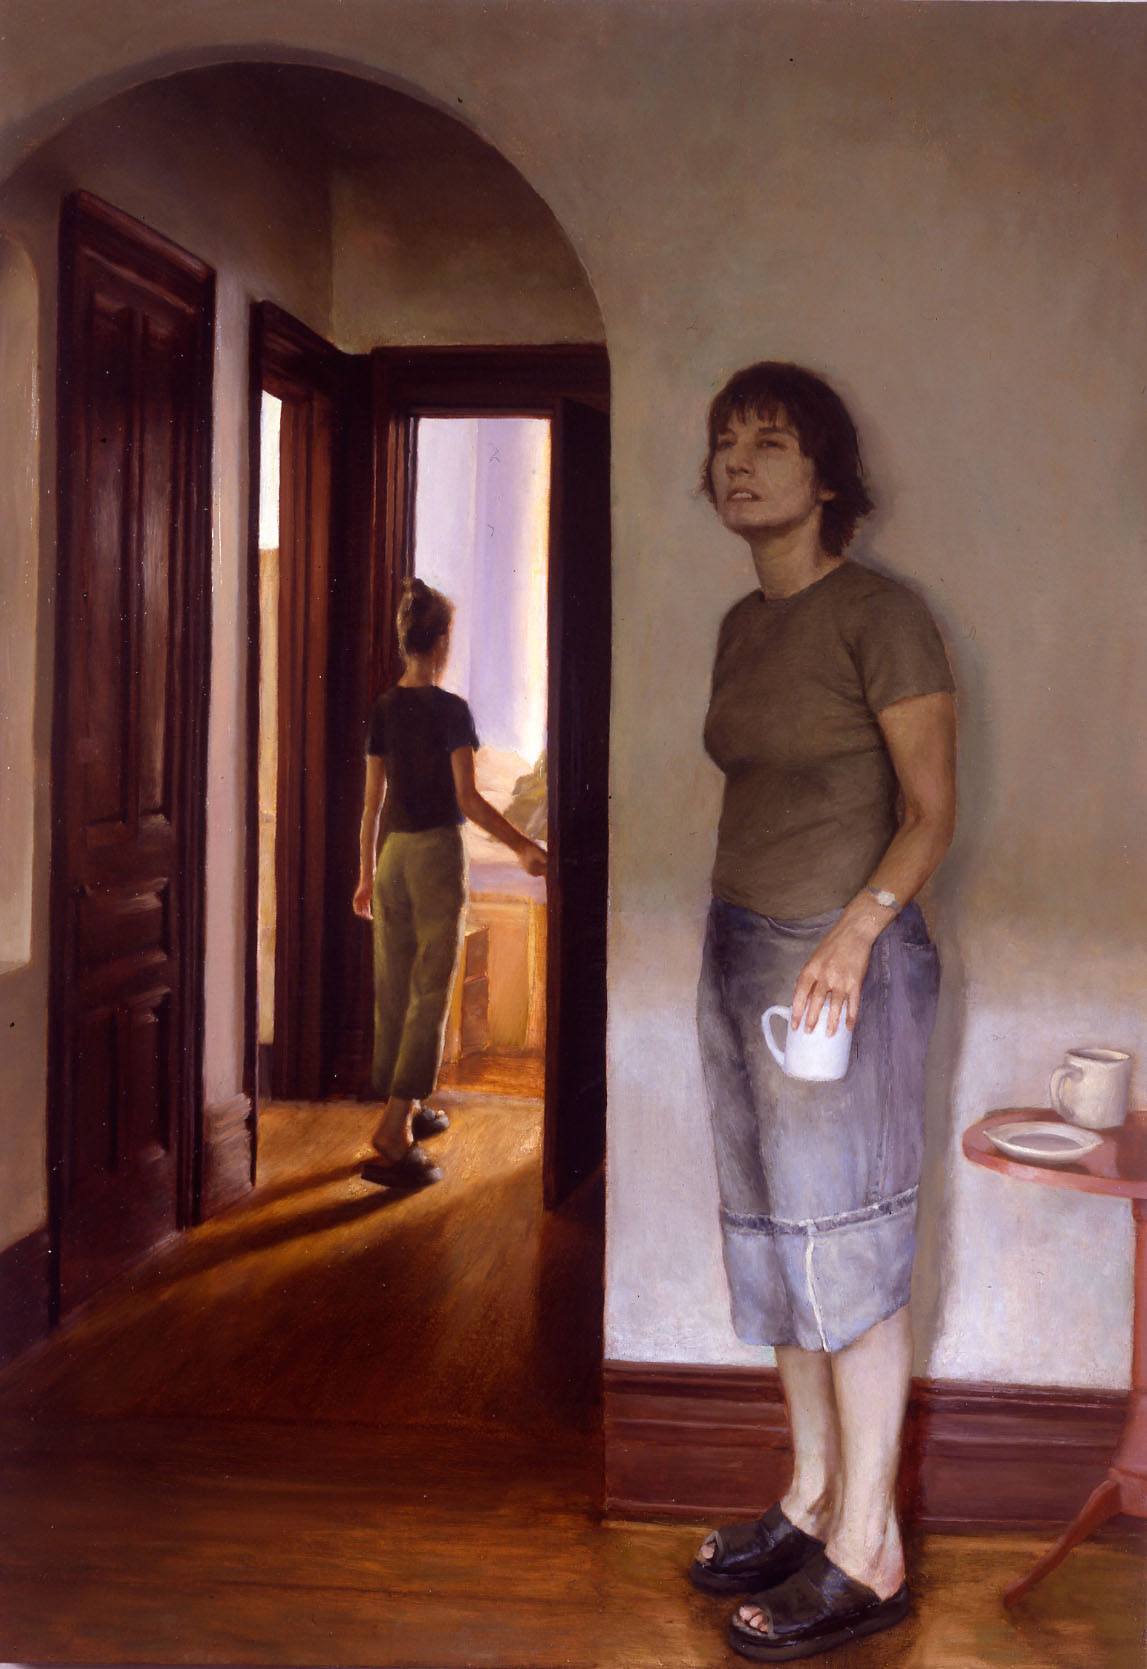 Bryan LeBoeuf   Hall Pass,  2003  oil on linen  36 x 24 inches